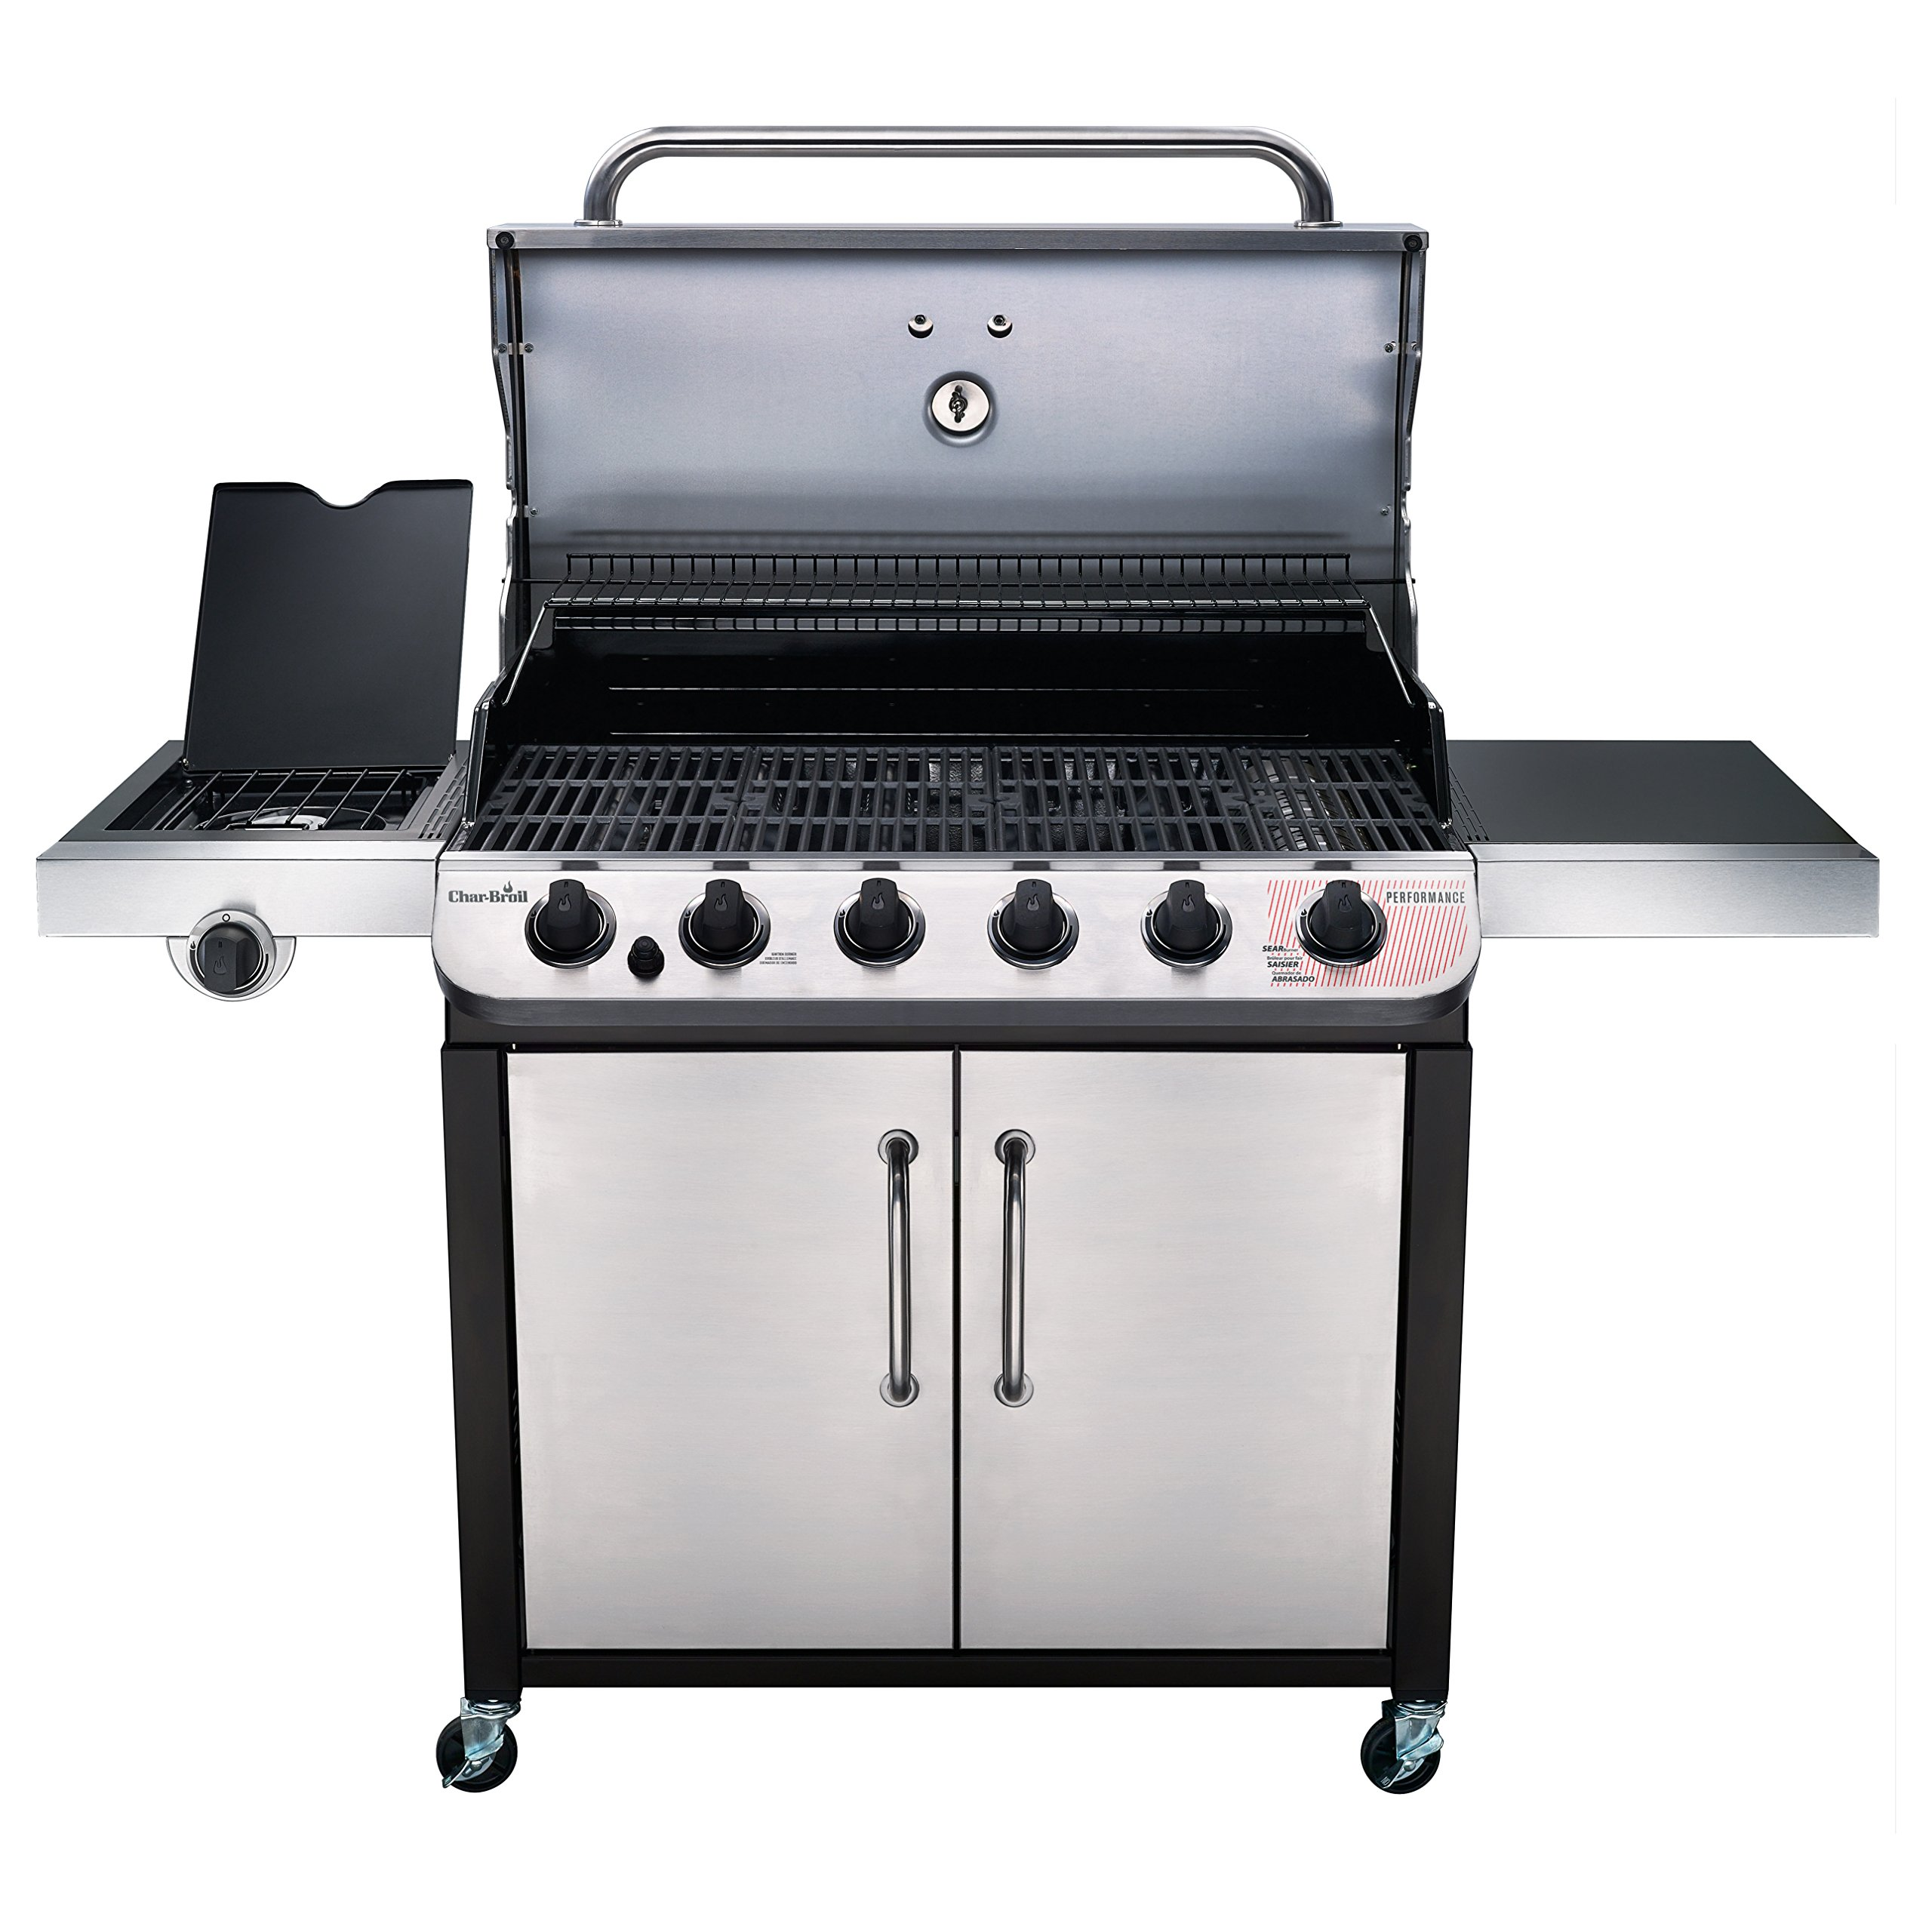 Char-Broil Performance 650 6-Burner Cabinet Gas Grill by Char-Broil (Image #4)